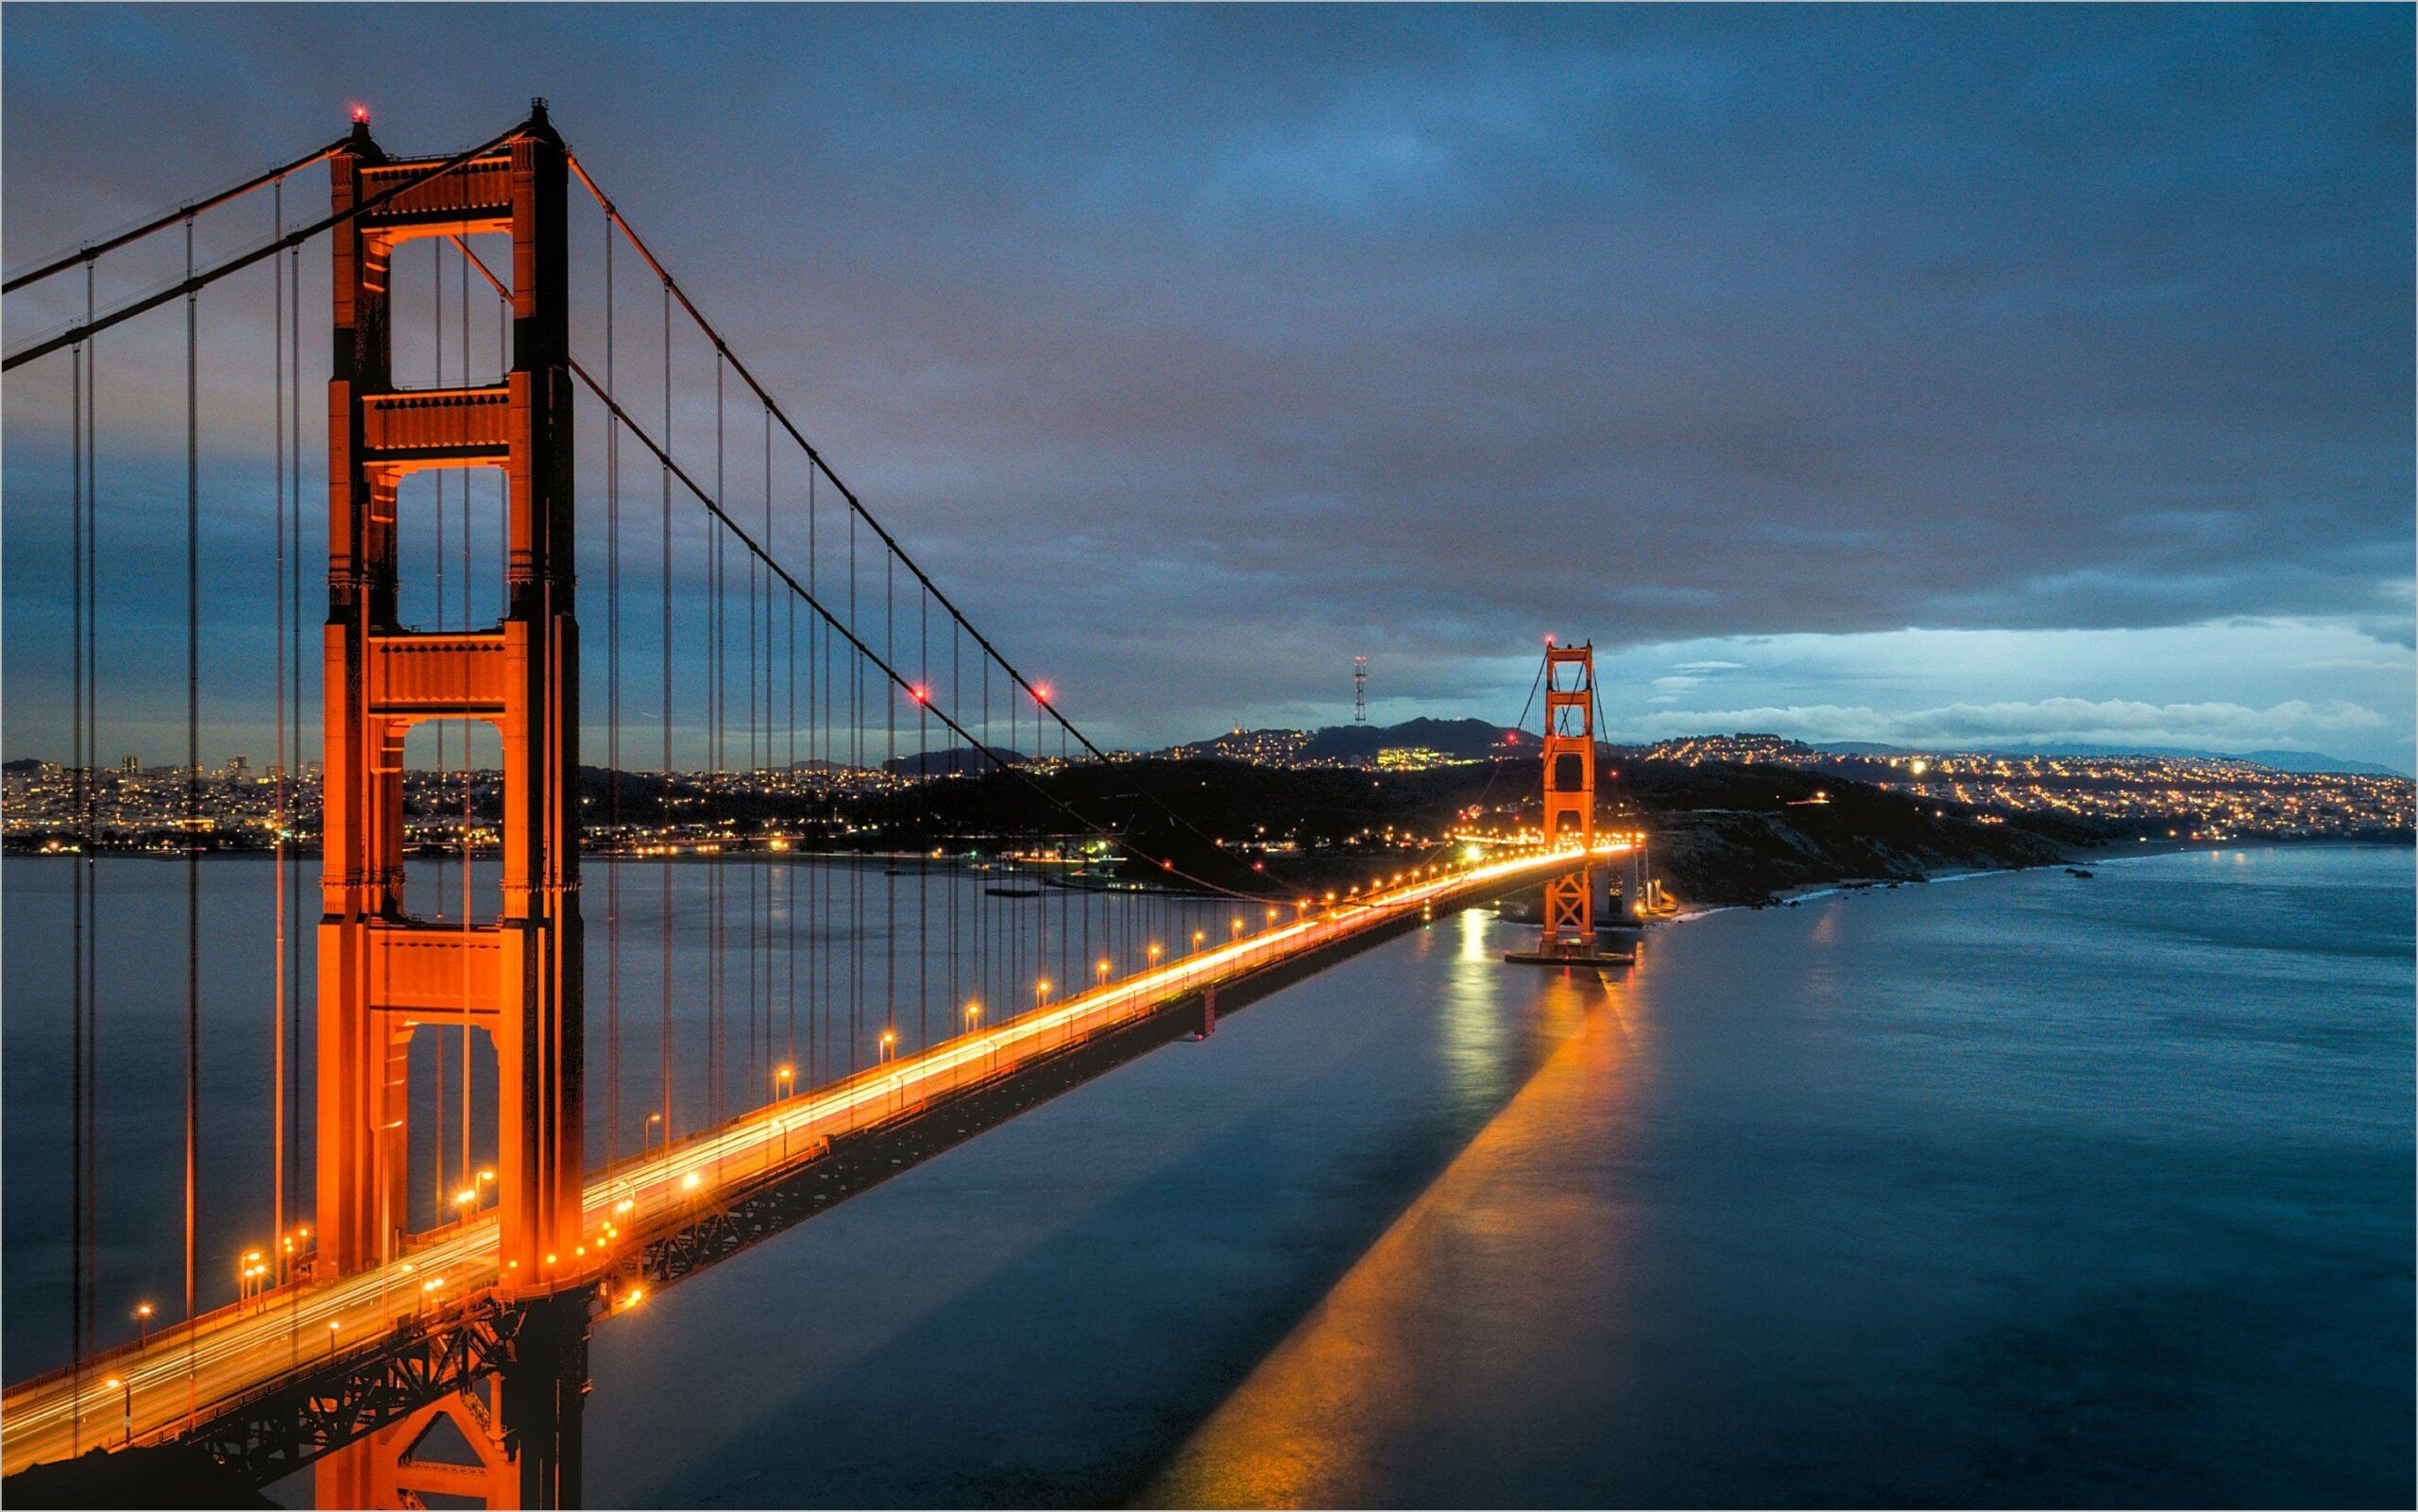 4k Wallpaper Blue Bridge Light Dark In 2020 Golden Gate Bridge Wallpaper Bridge Wallpaper Golden Gate Bridge